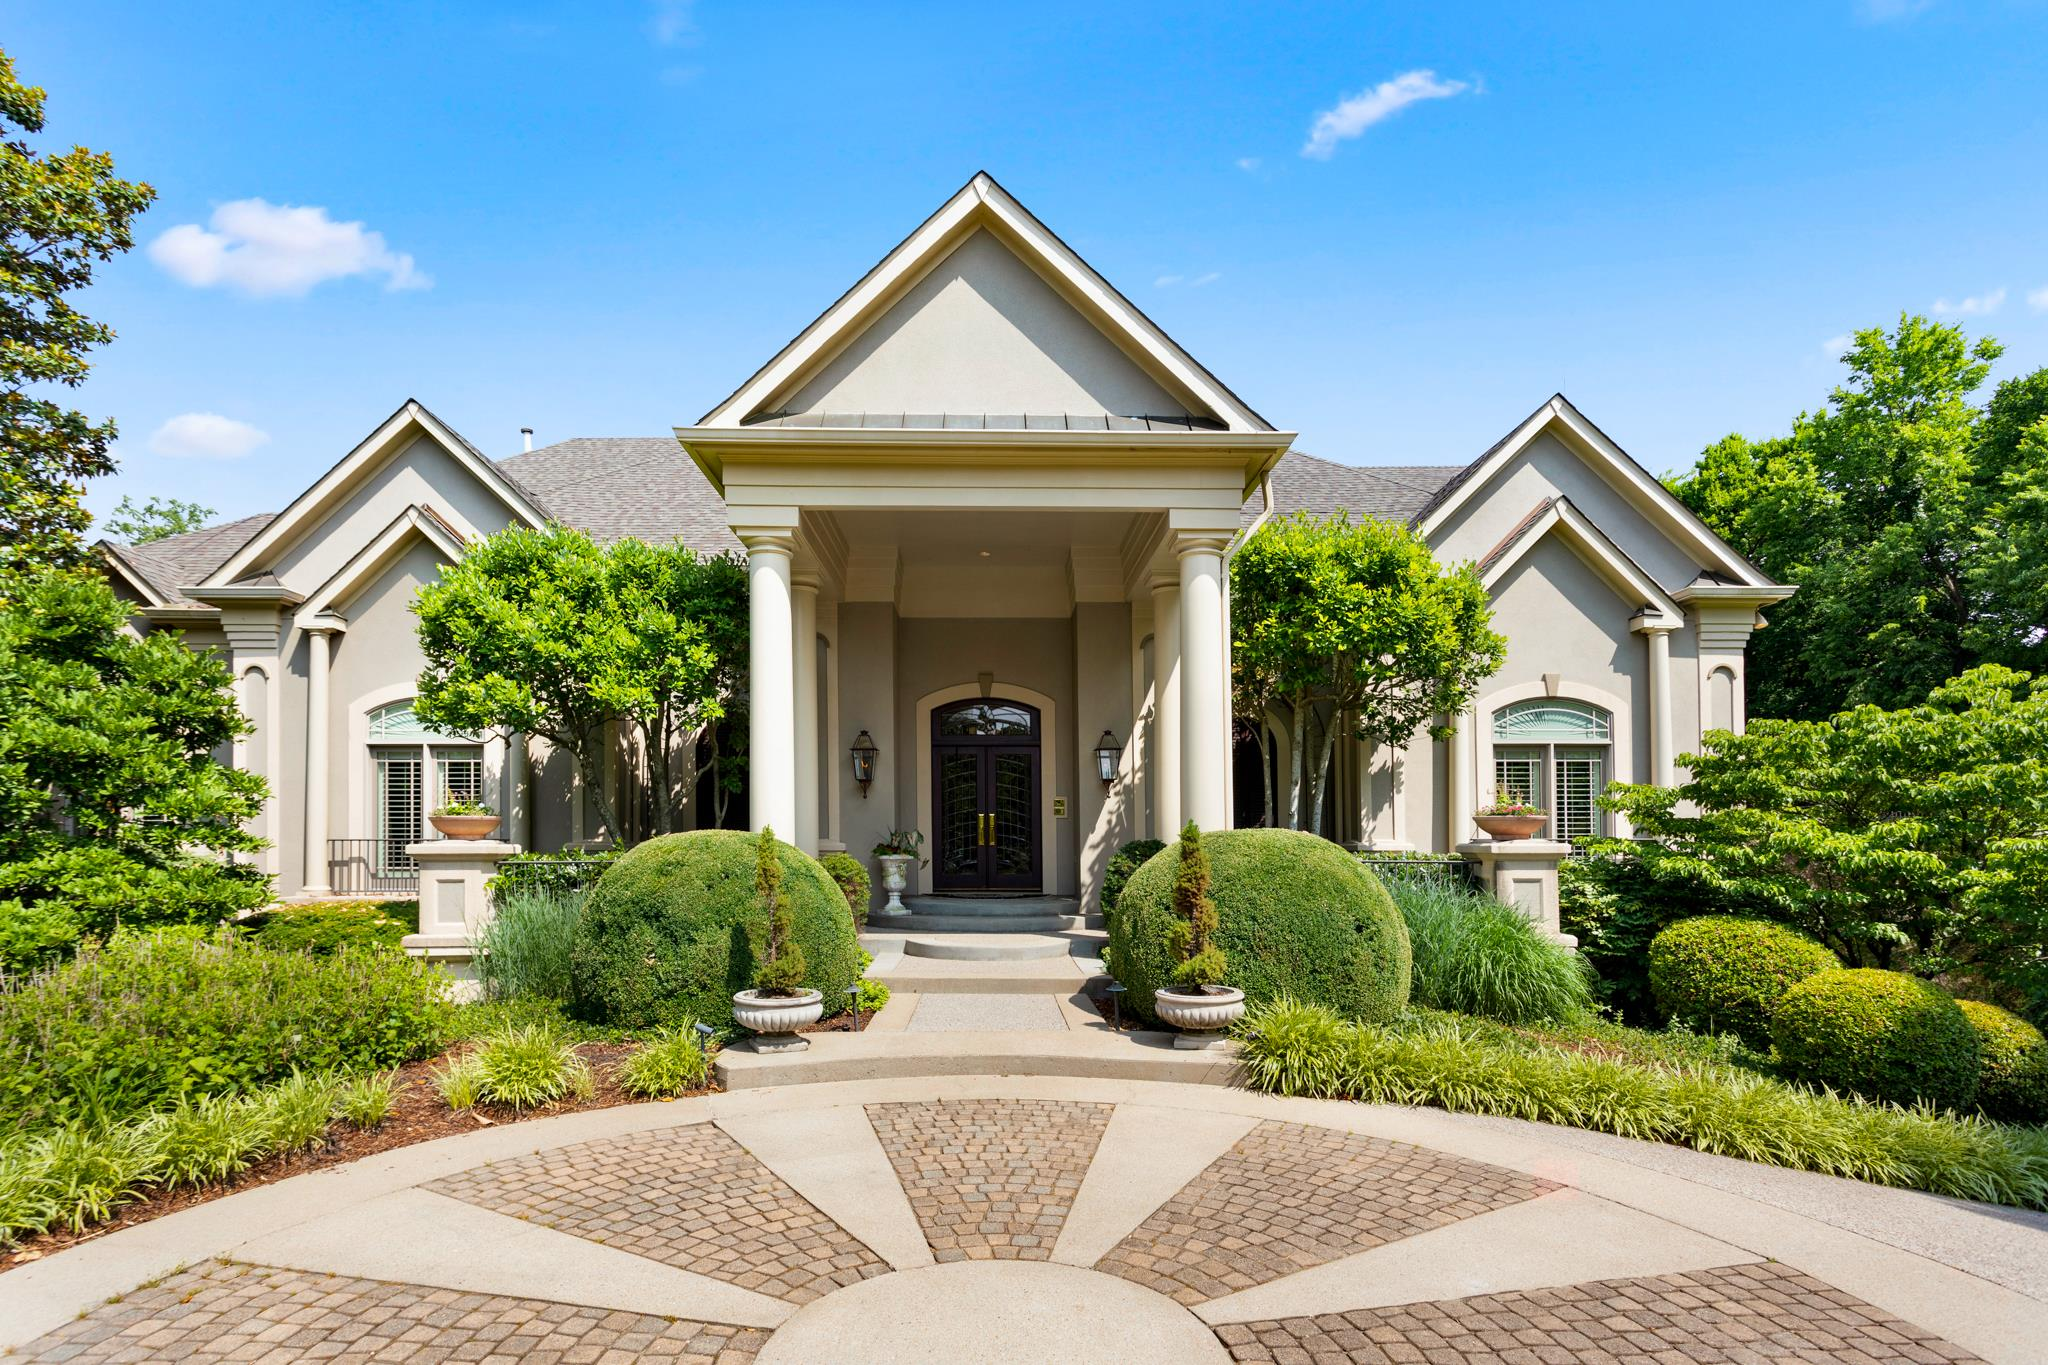 5001 High Valley Dr, Brentwood, TN 37027 - Brentwood, TN real estate listing